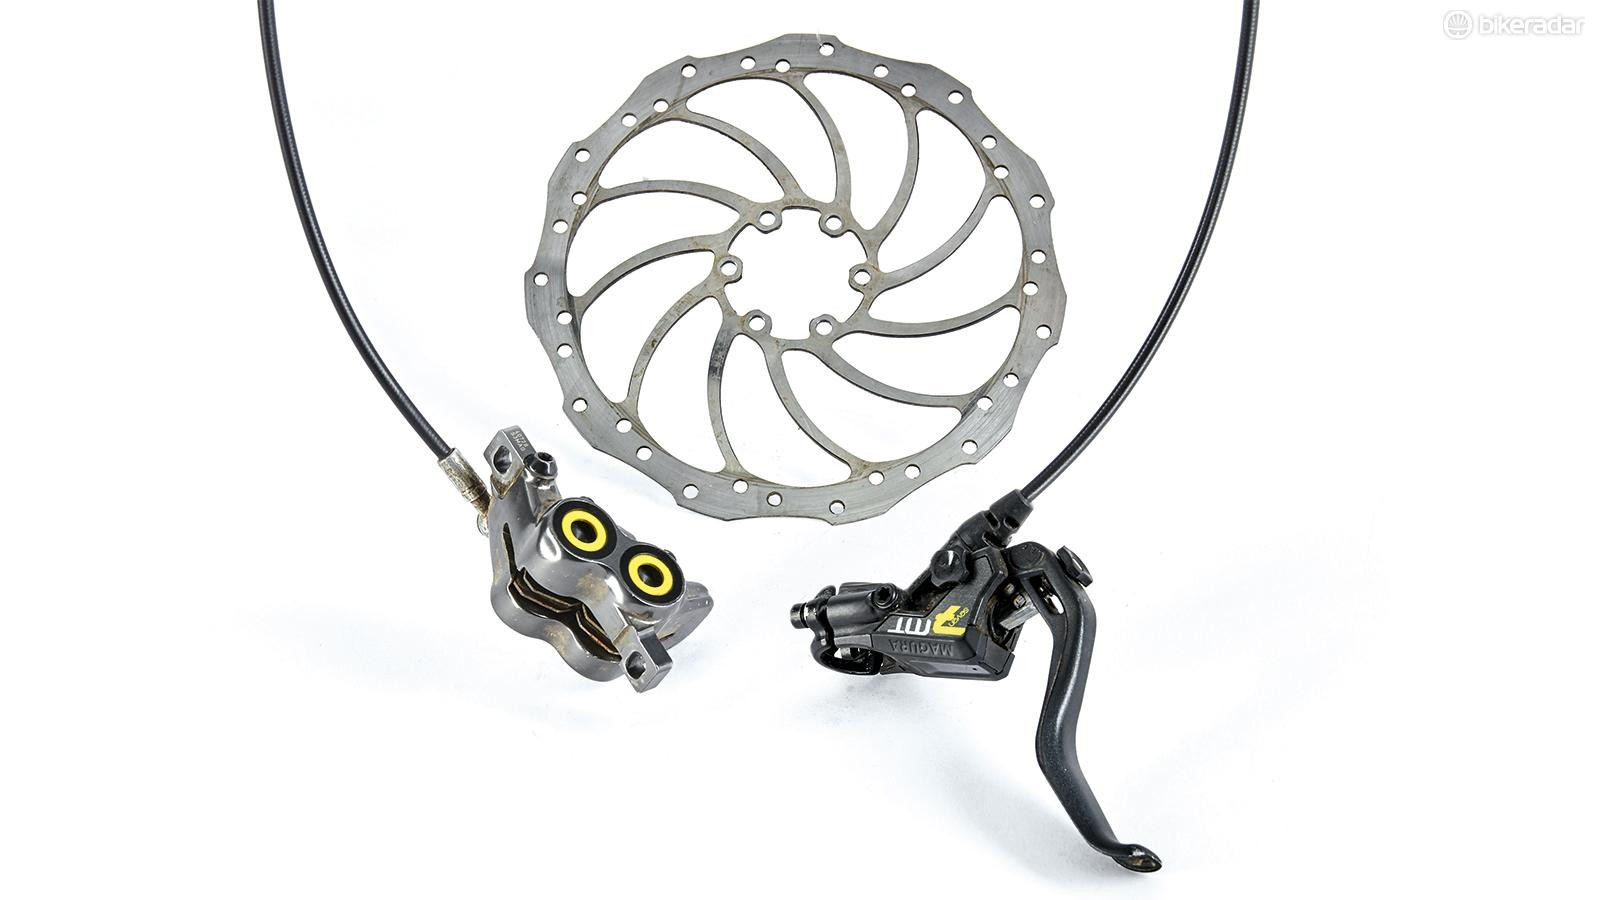 Magura's supremely powerful MT7 brakes are compromised by their wooden feel